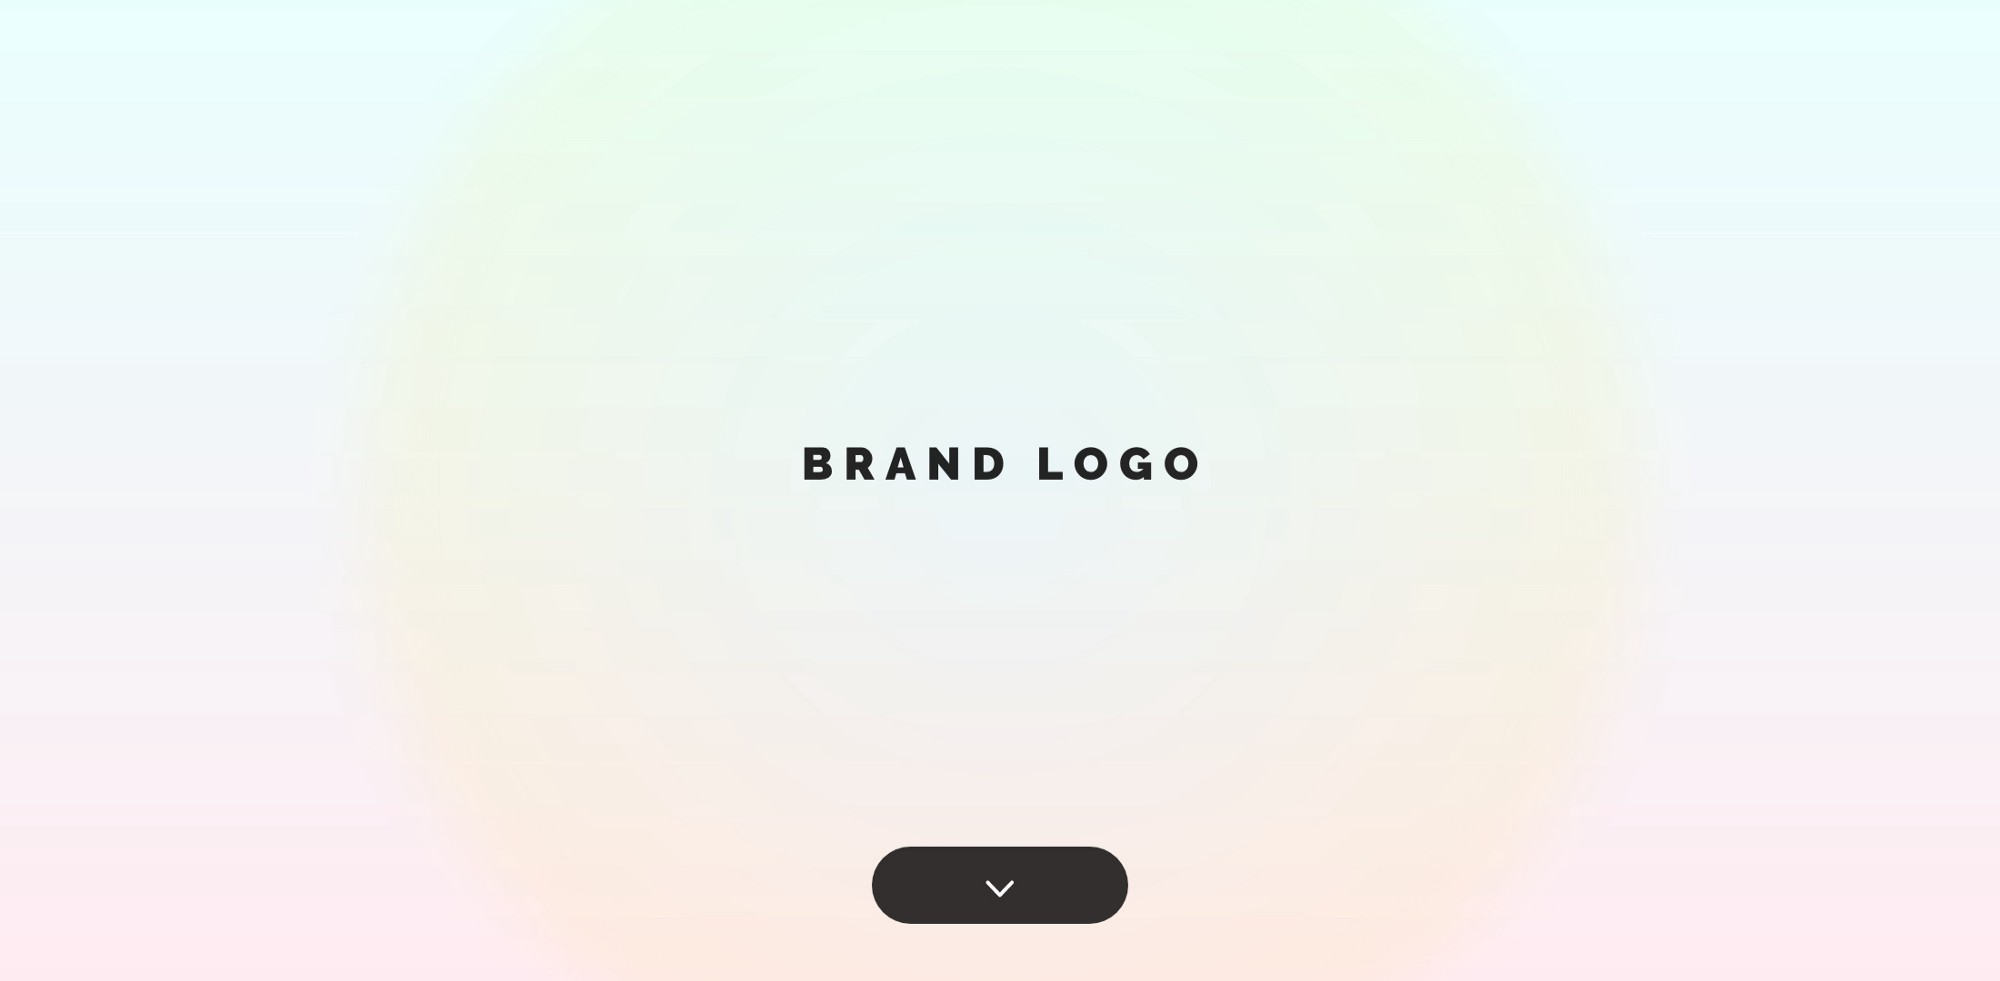 This landing page is defined by white space. The brand logo is featured in the center of a full color gradient screen, and one actionable button sets the content hierarchy, to scroll down.